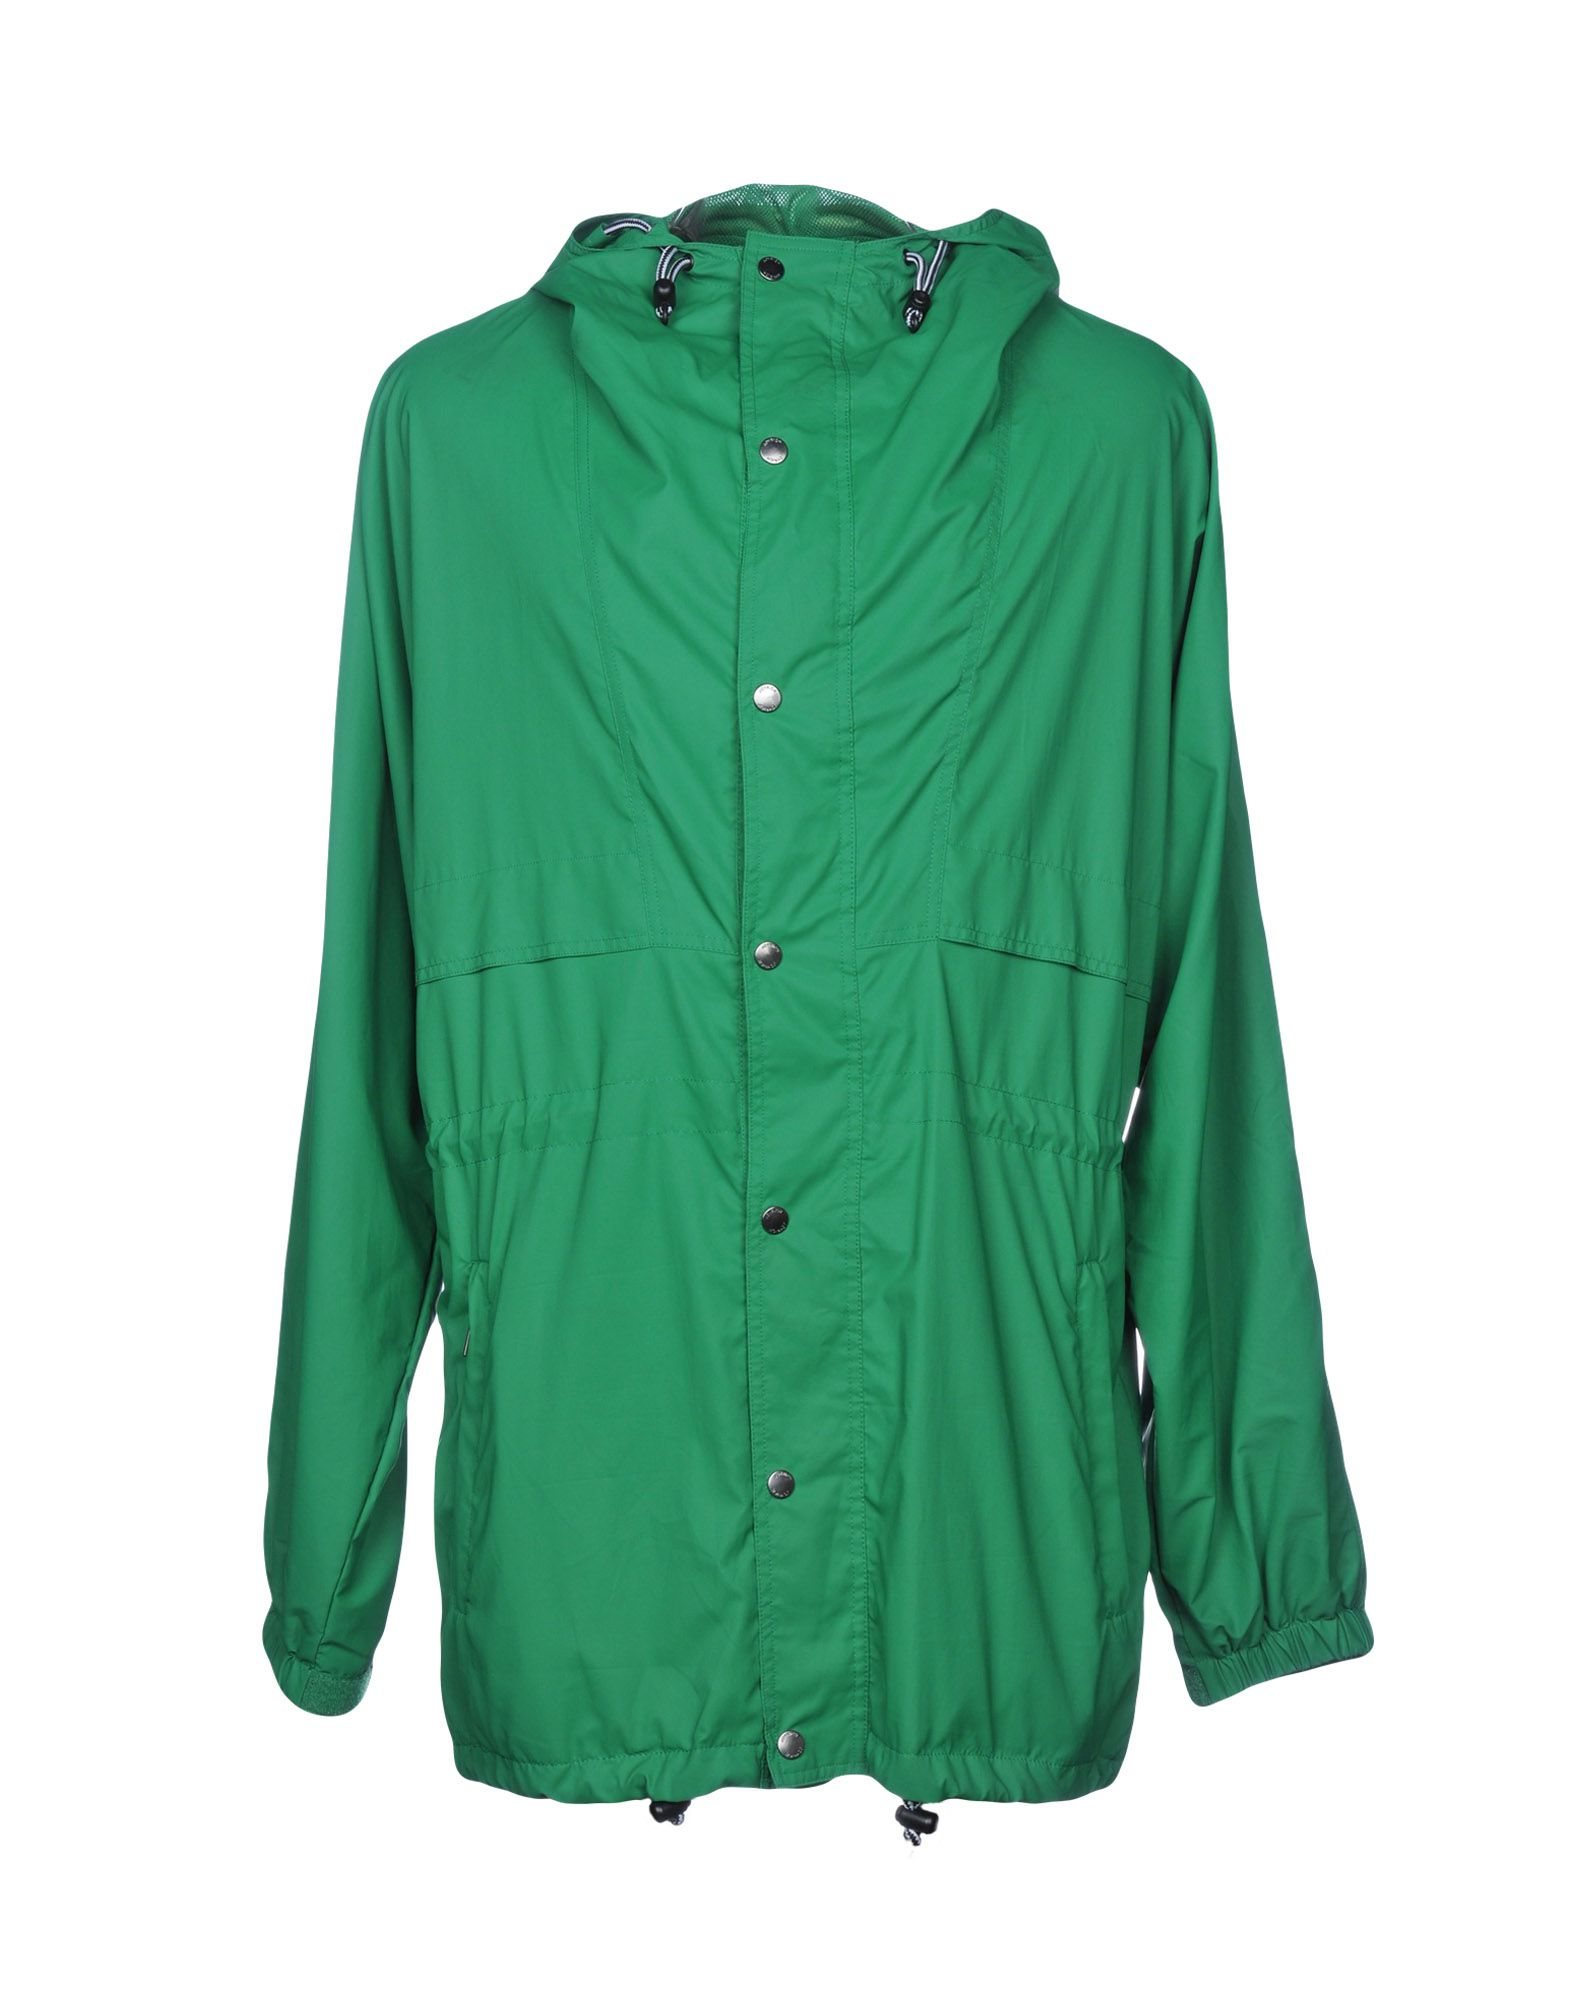 JOYRICH Full-Length Jacket in Green